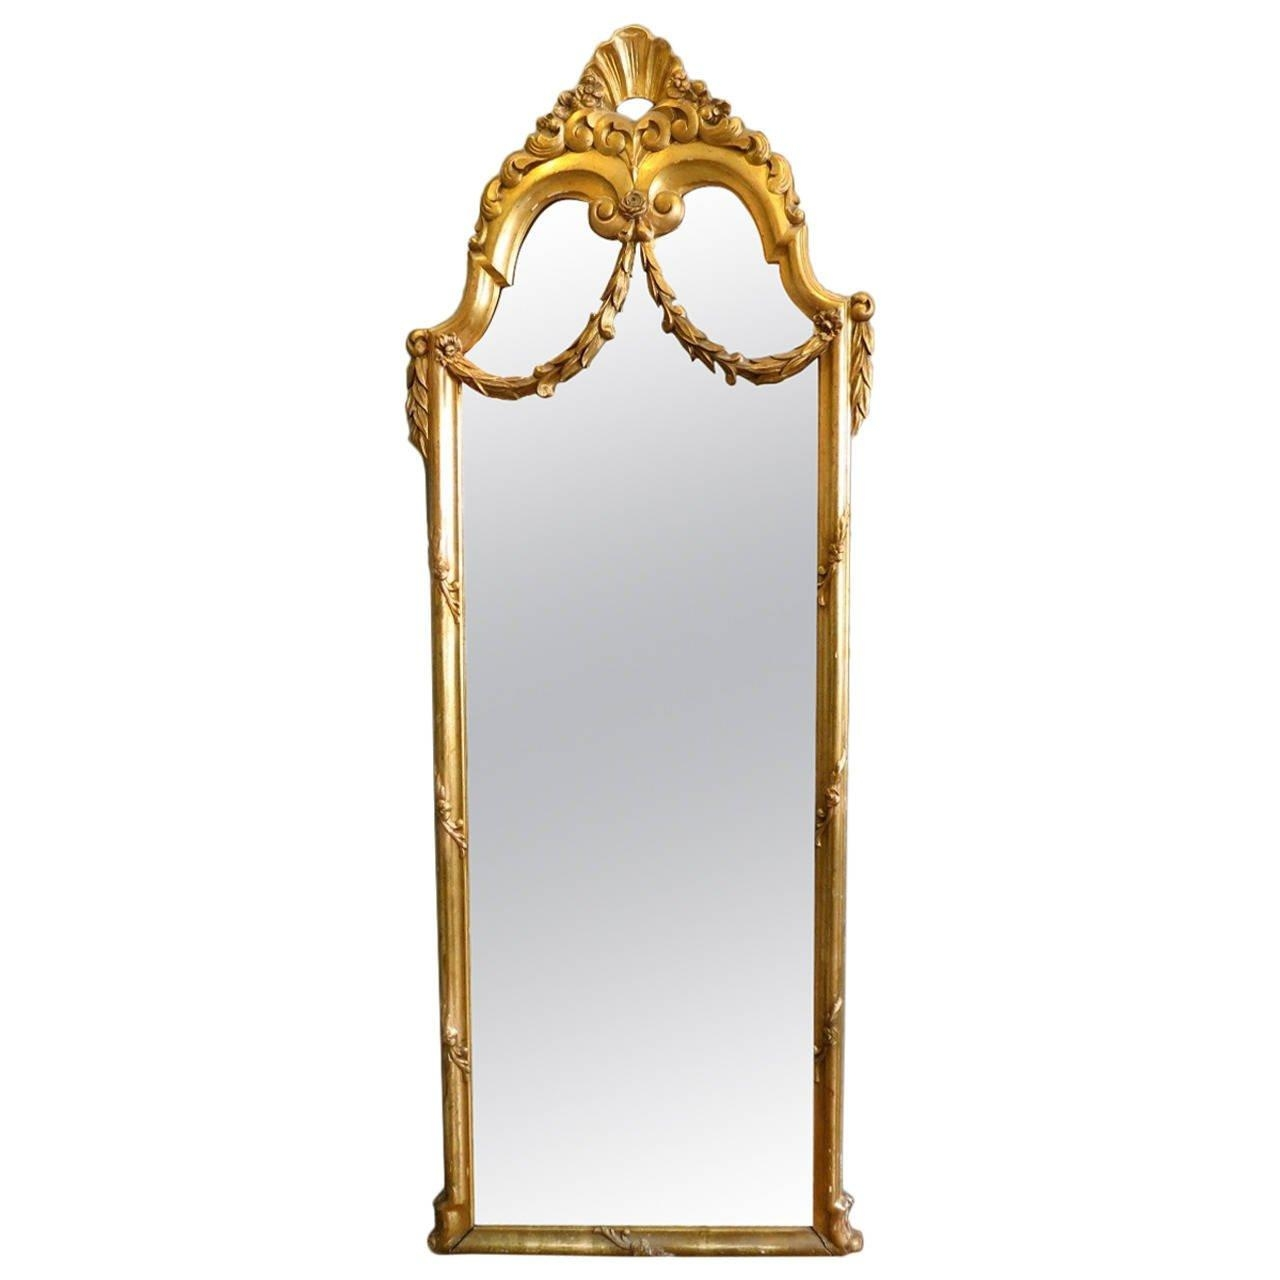 Antique French Gold Gilt Floor Standing Mirror At 1Stdibs For Vintage Full Length Mirror (Image 3 of 20)